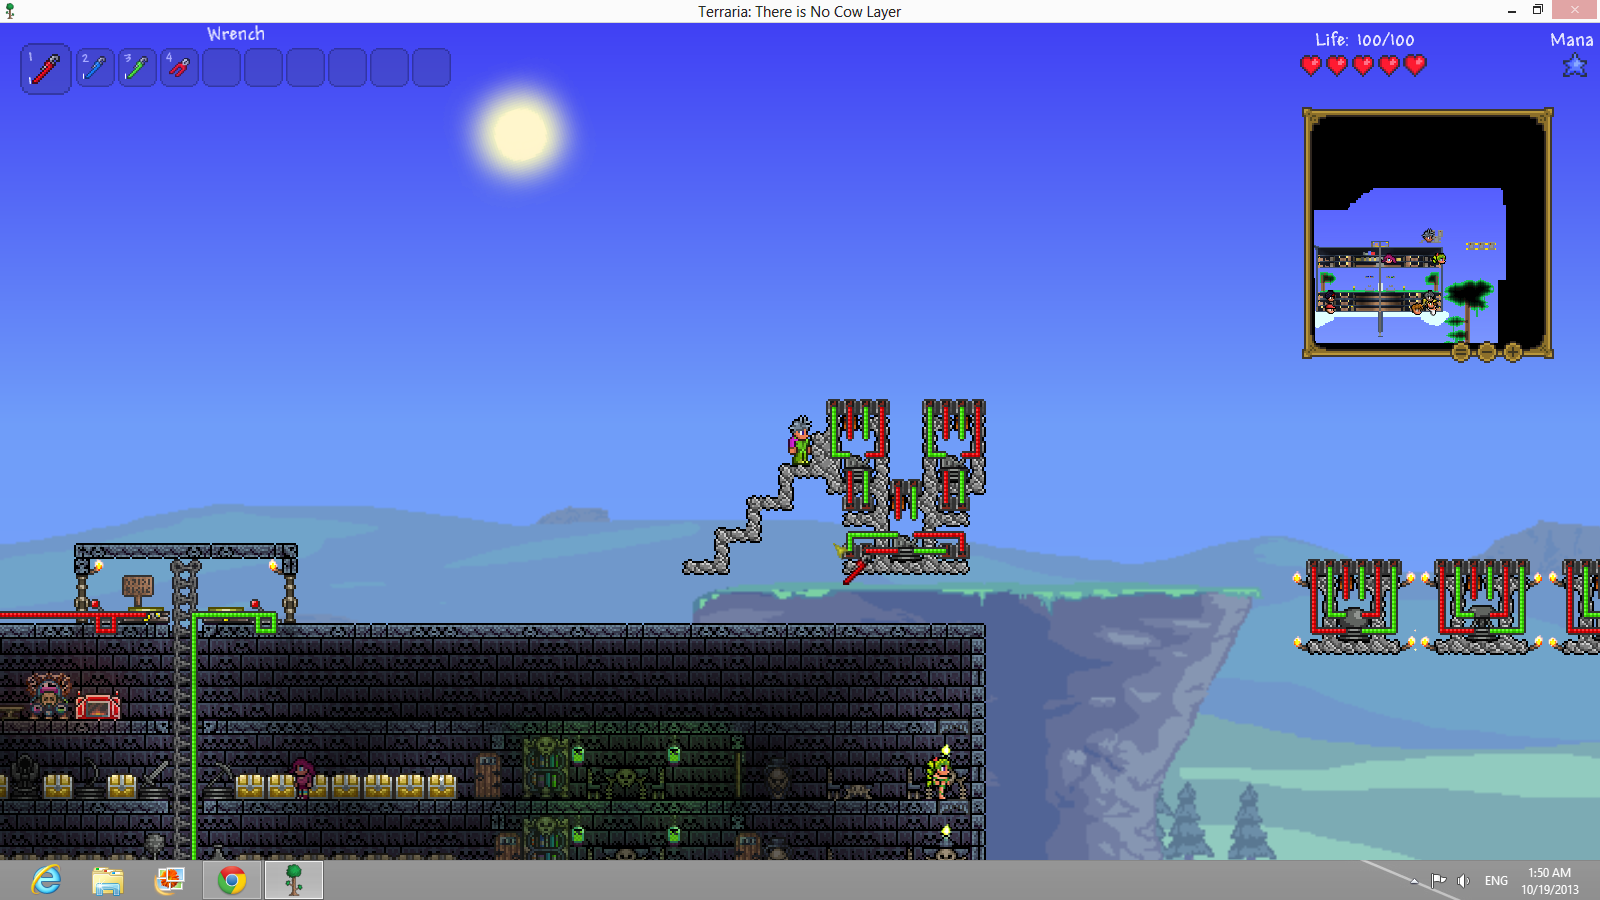 Guide Wiring The Official Terraria Wiki I don't know if a teleporter will work or not, but you really don't have to know anything about mystcraft at all to solve this particular problem. guide wiring the official terraria wiki